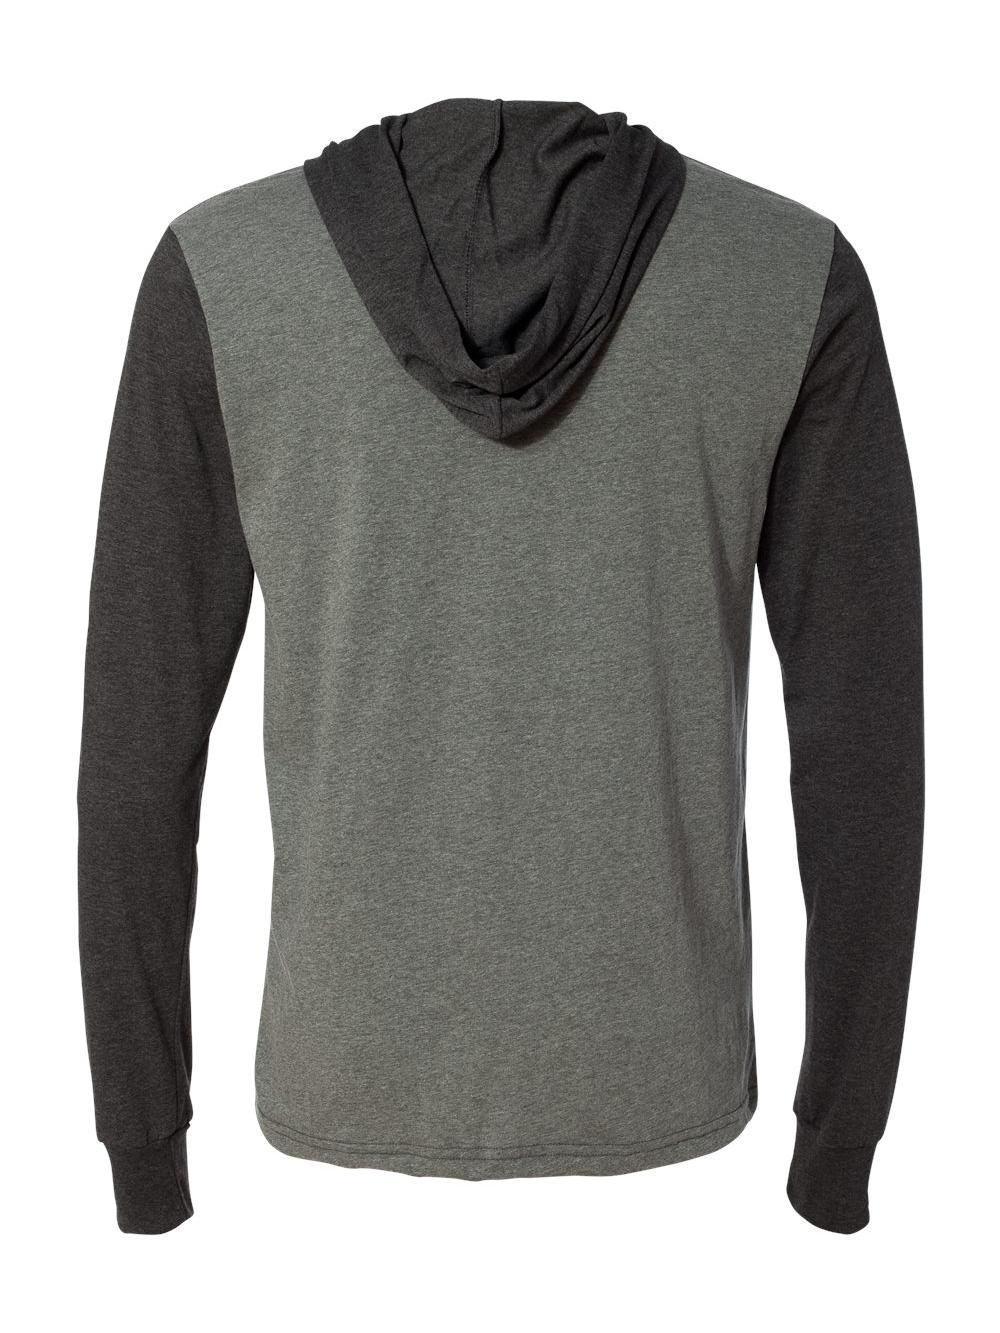 Bella-Canvas-Unisex-Long-Sleeve-Jersey-Hooded-Tee-3512 thumbnail 16